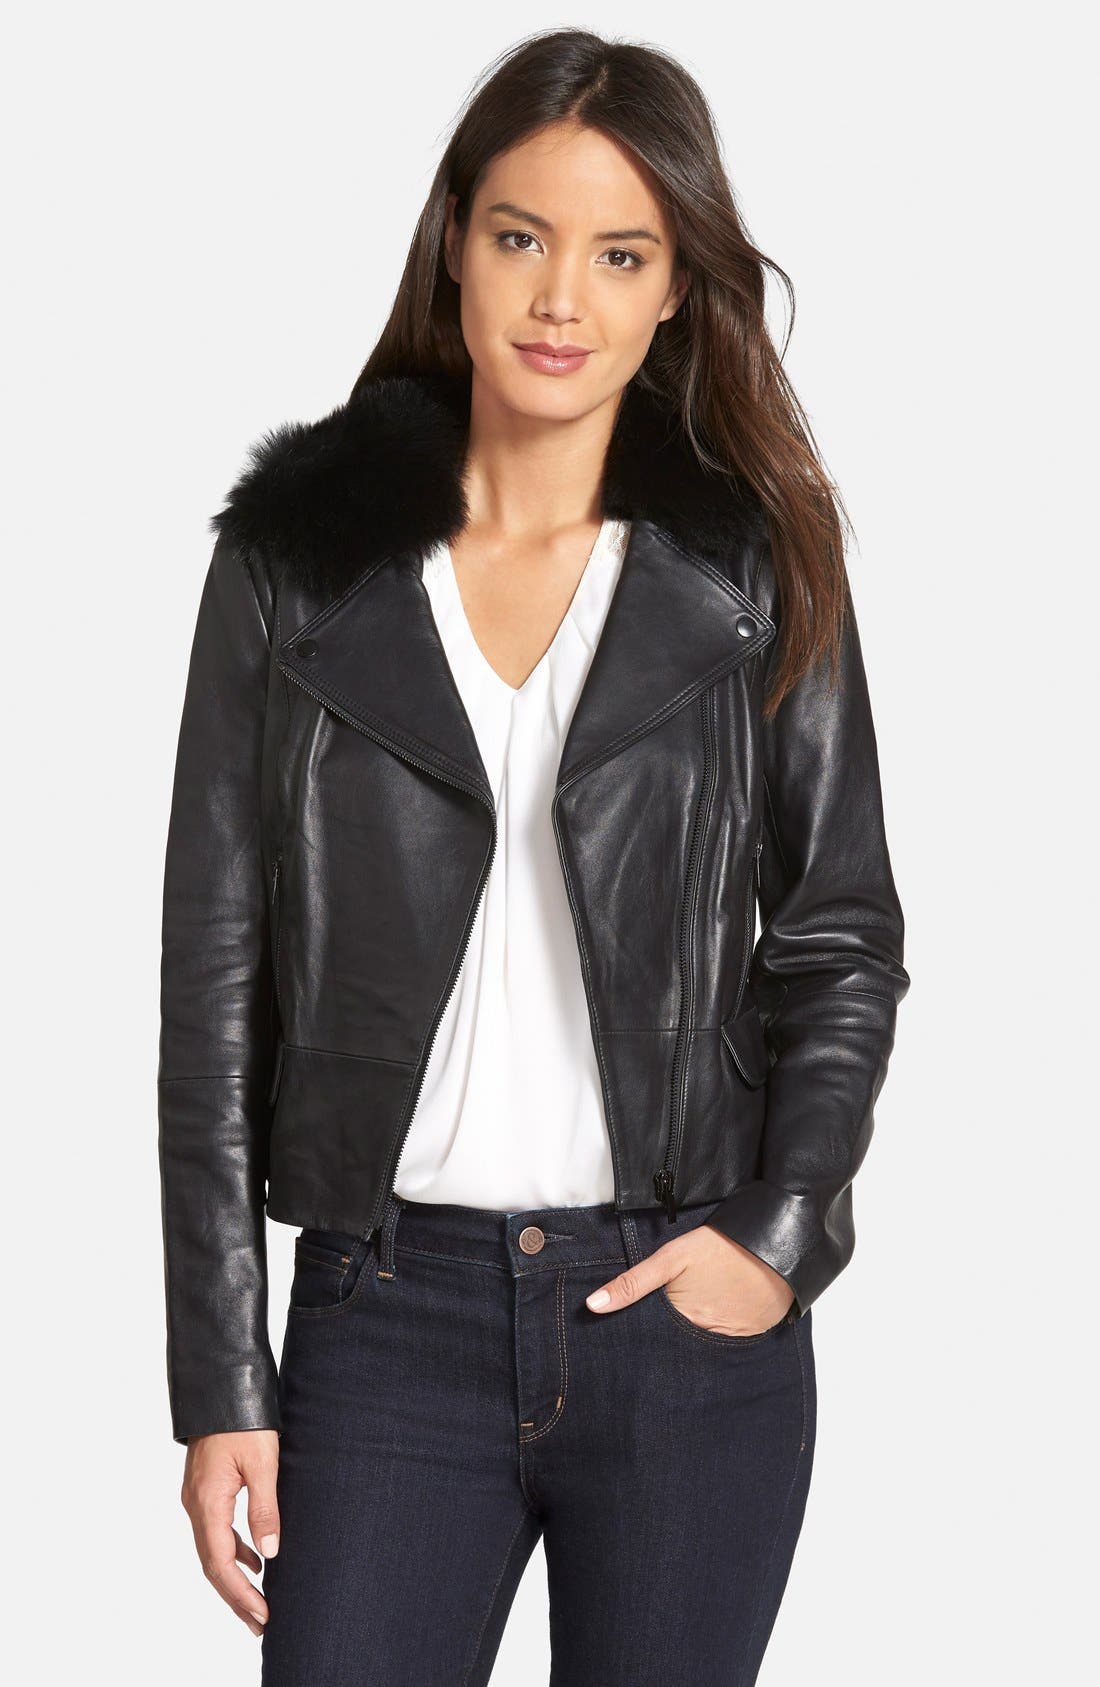 Main Image - Classiques Entier® 'Brenna' Leather Jacket with Detachable Genuine Toscana Shearling Collar (Regular & Petite)